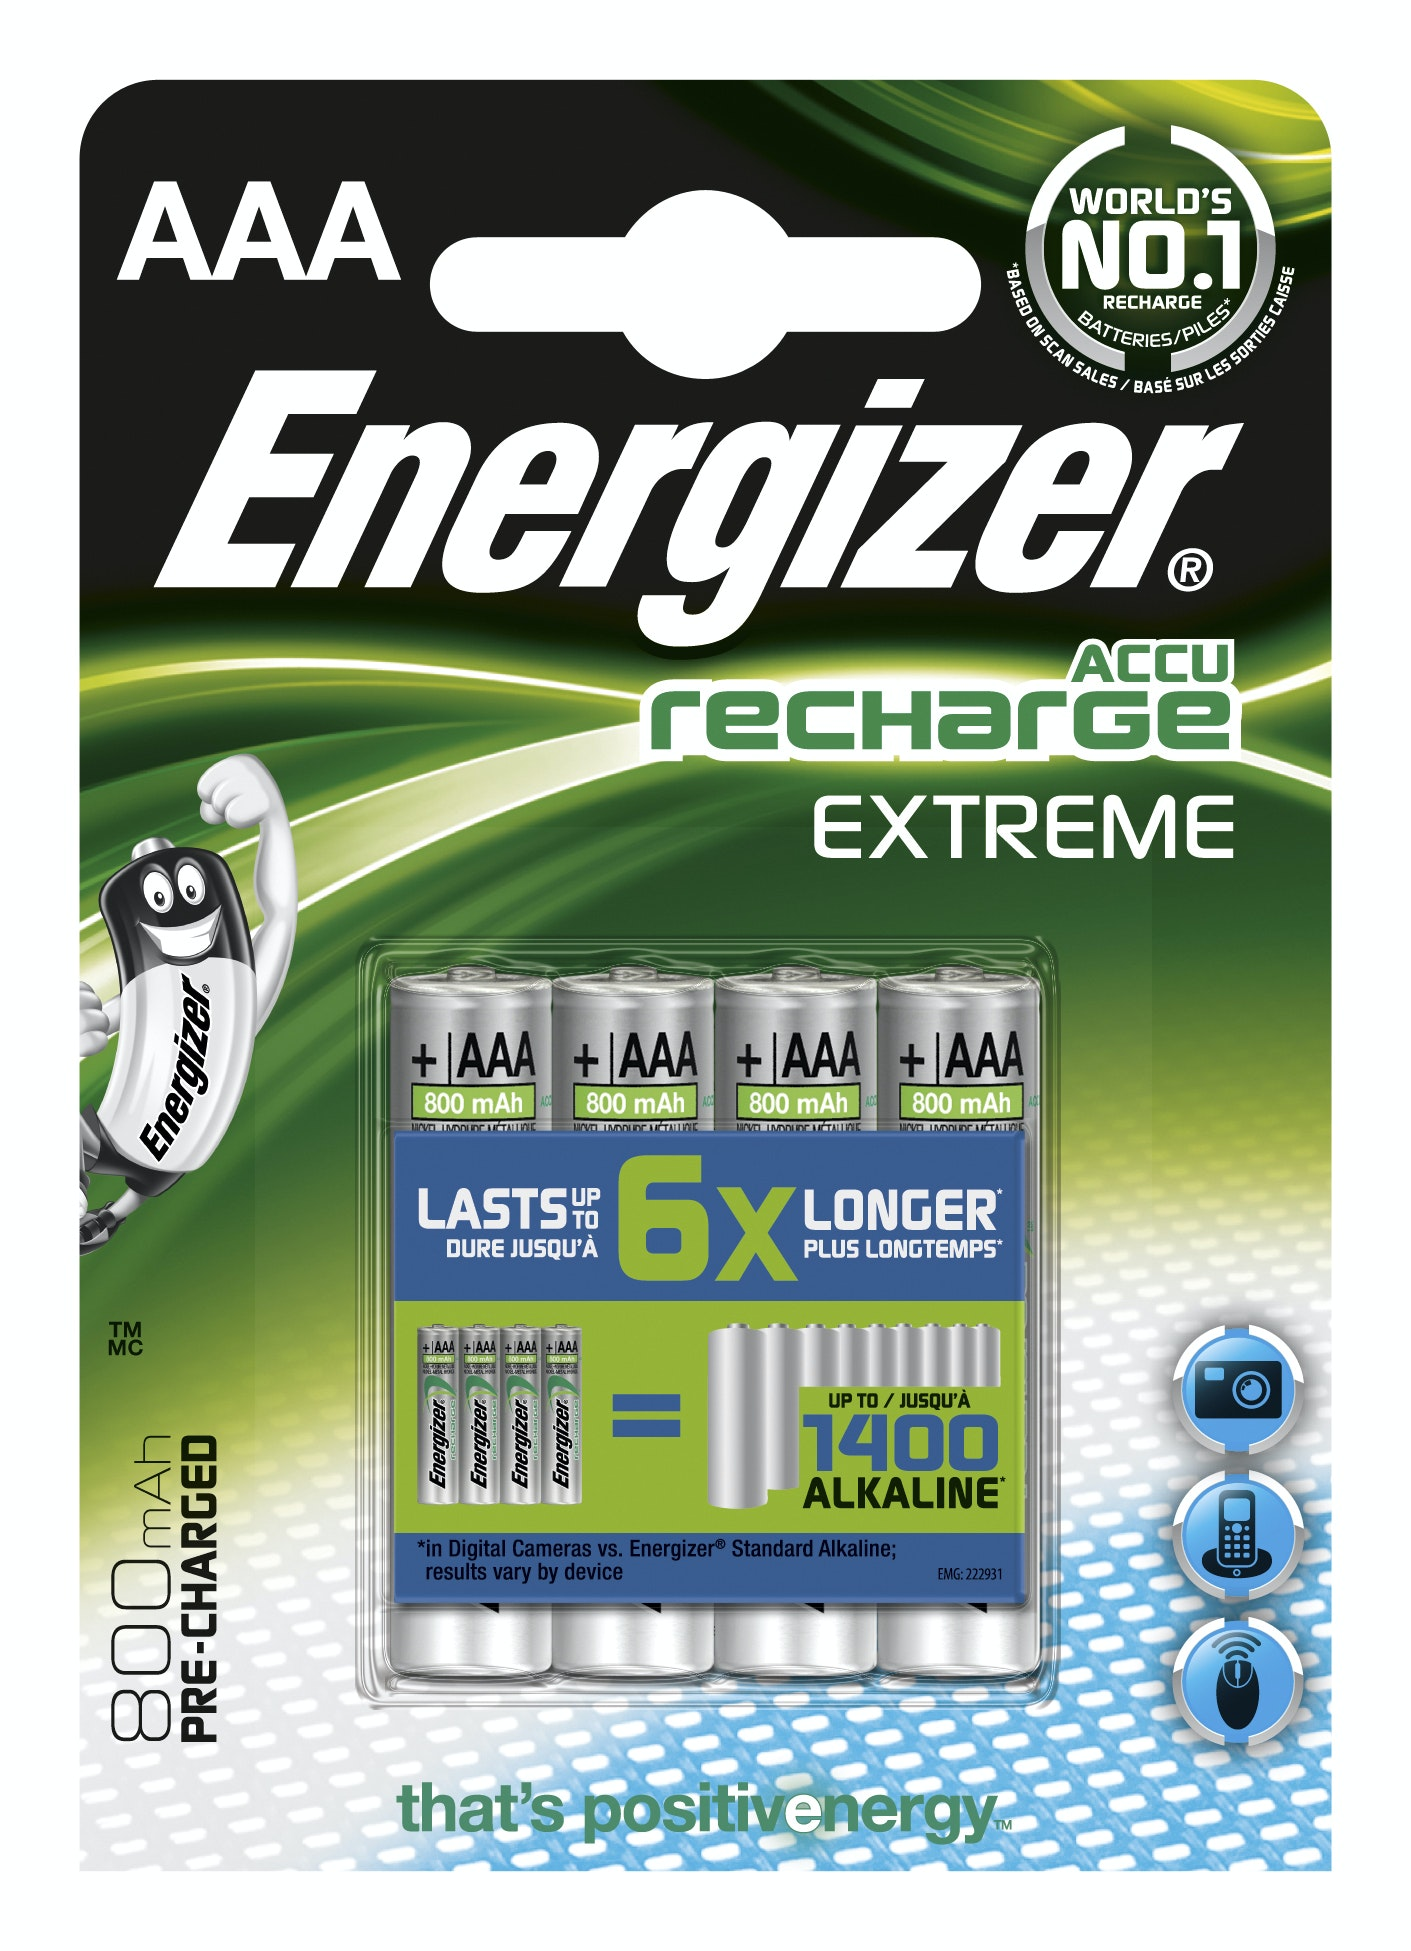 Batteri Energizer Extreme Rechargeable AAA 800Mah Fsb4